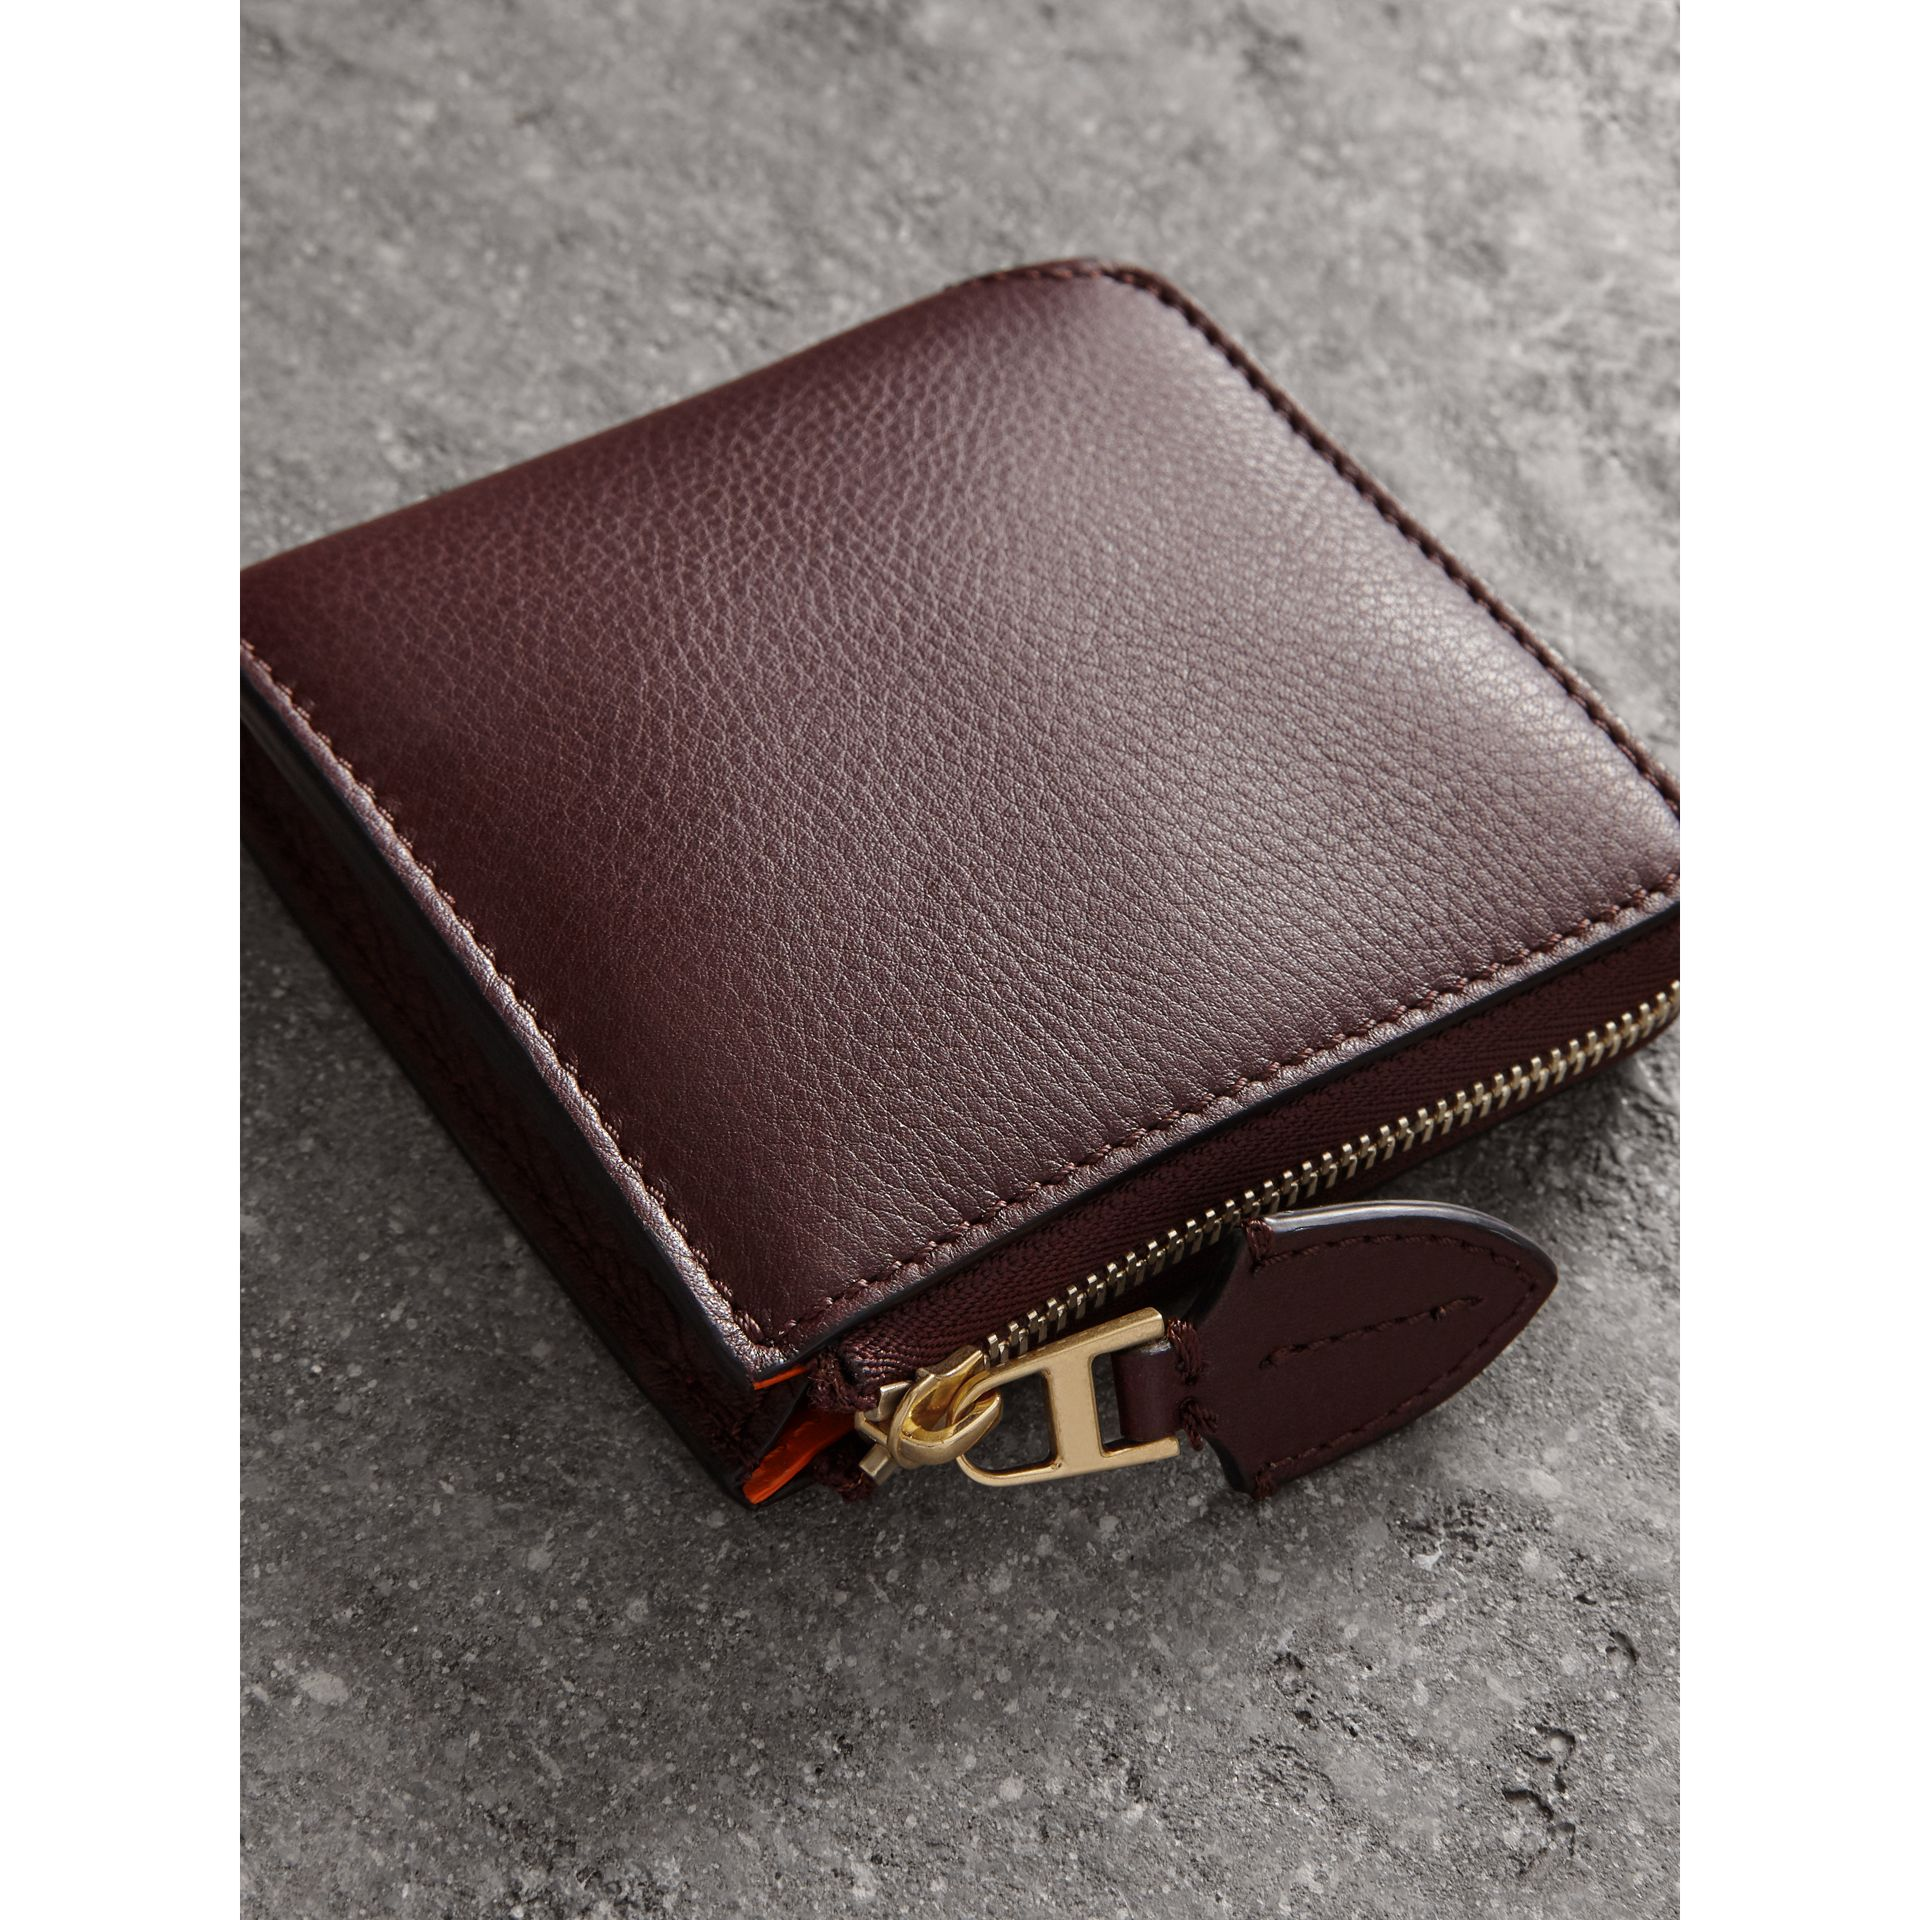 Grainy Leather Square Ziparound Wallet in Deep Claret - Women | Burberry - gallery image 2